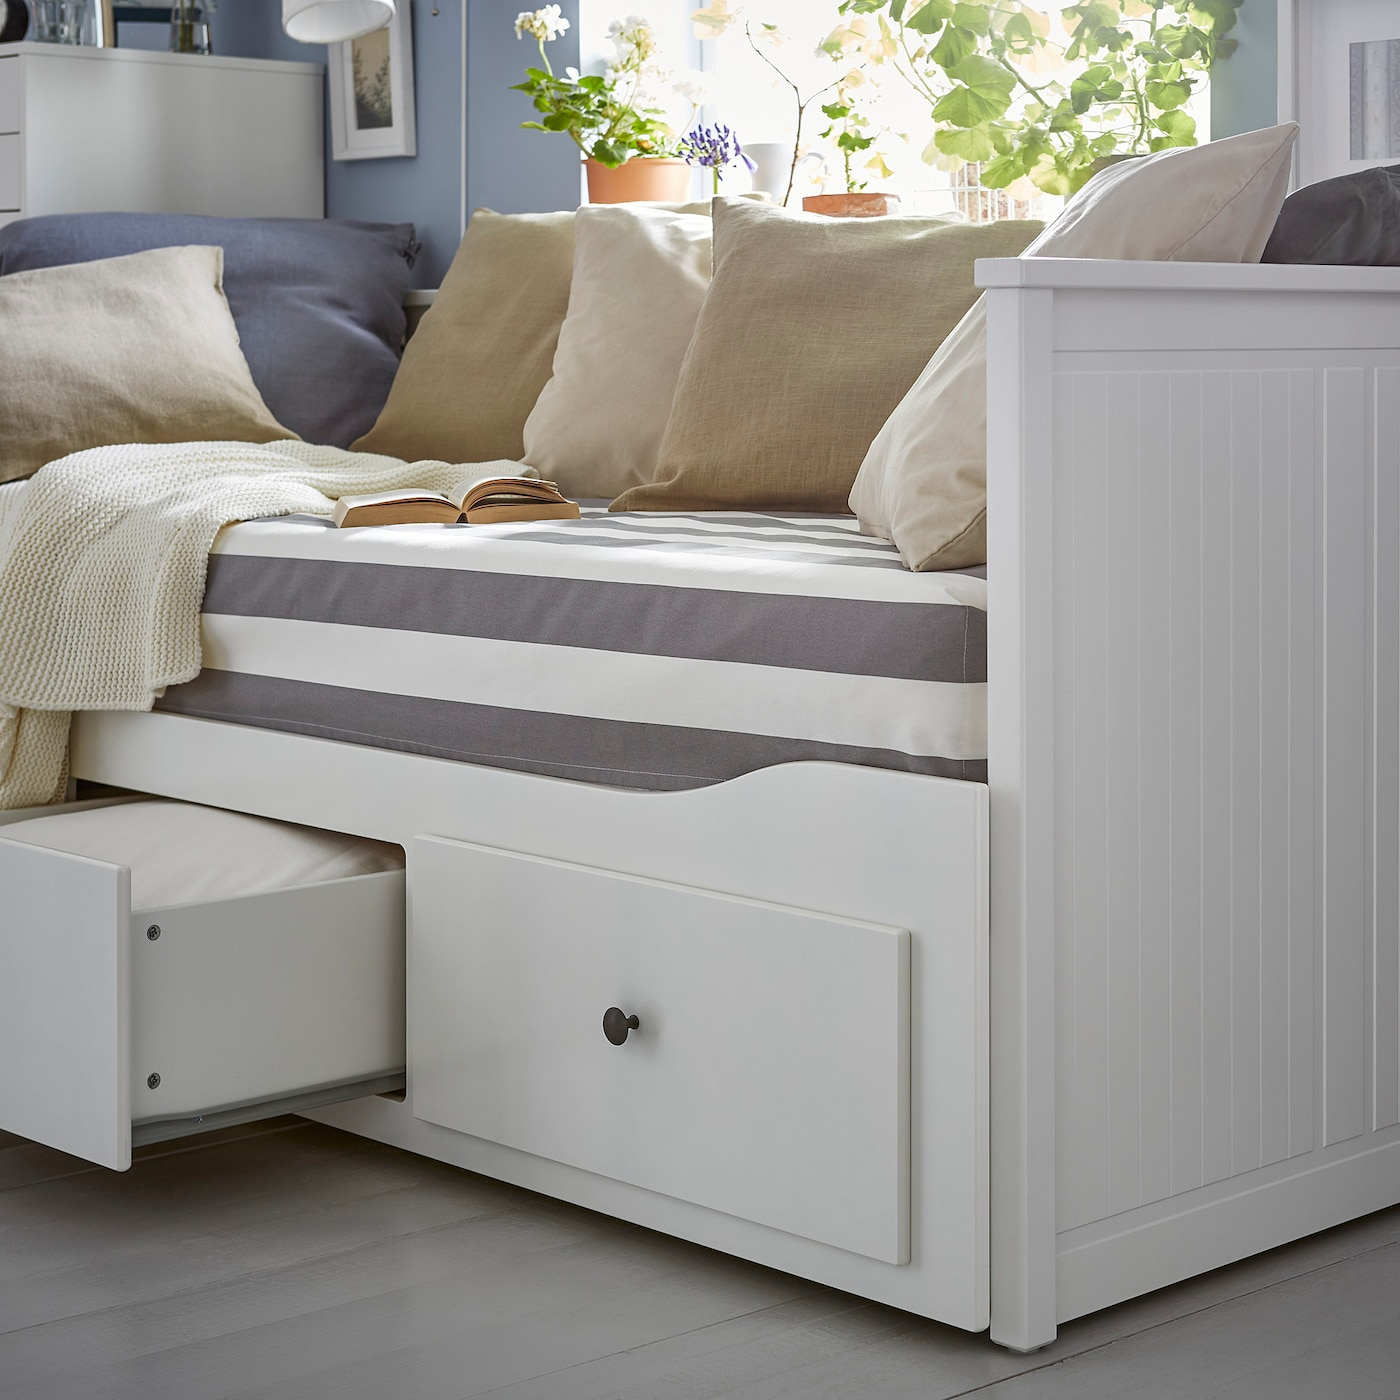 Hemnes Day Bed W 3 Drawers 2 Mattresses White Moshult Firm 80x200 Cm Ikea